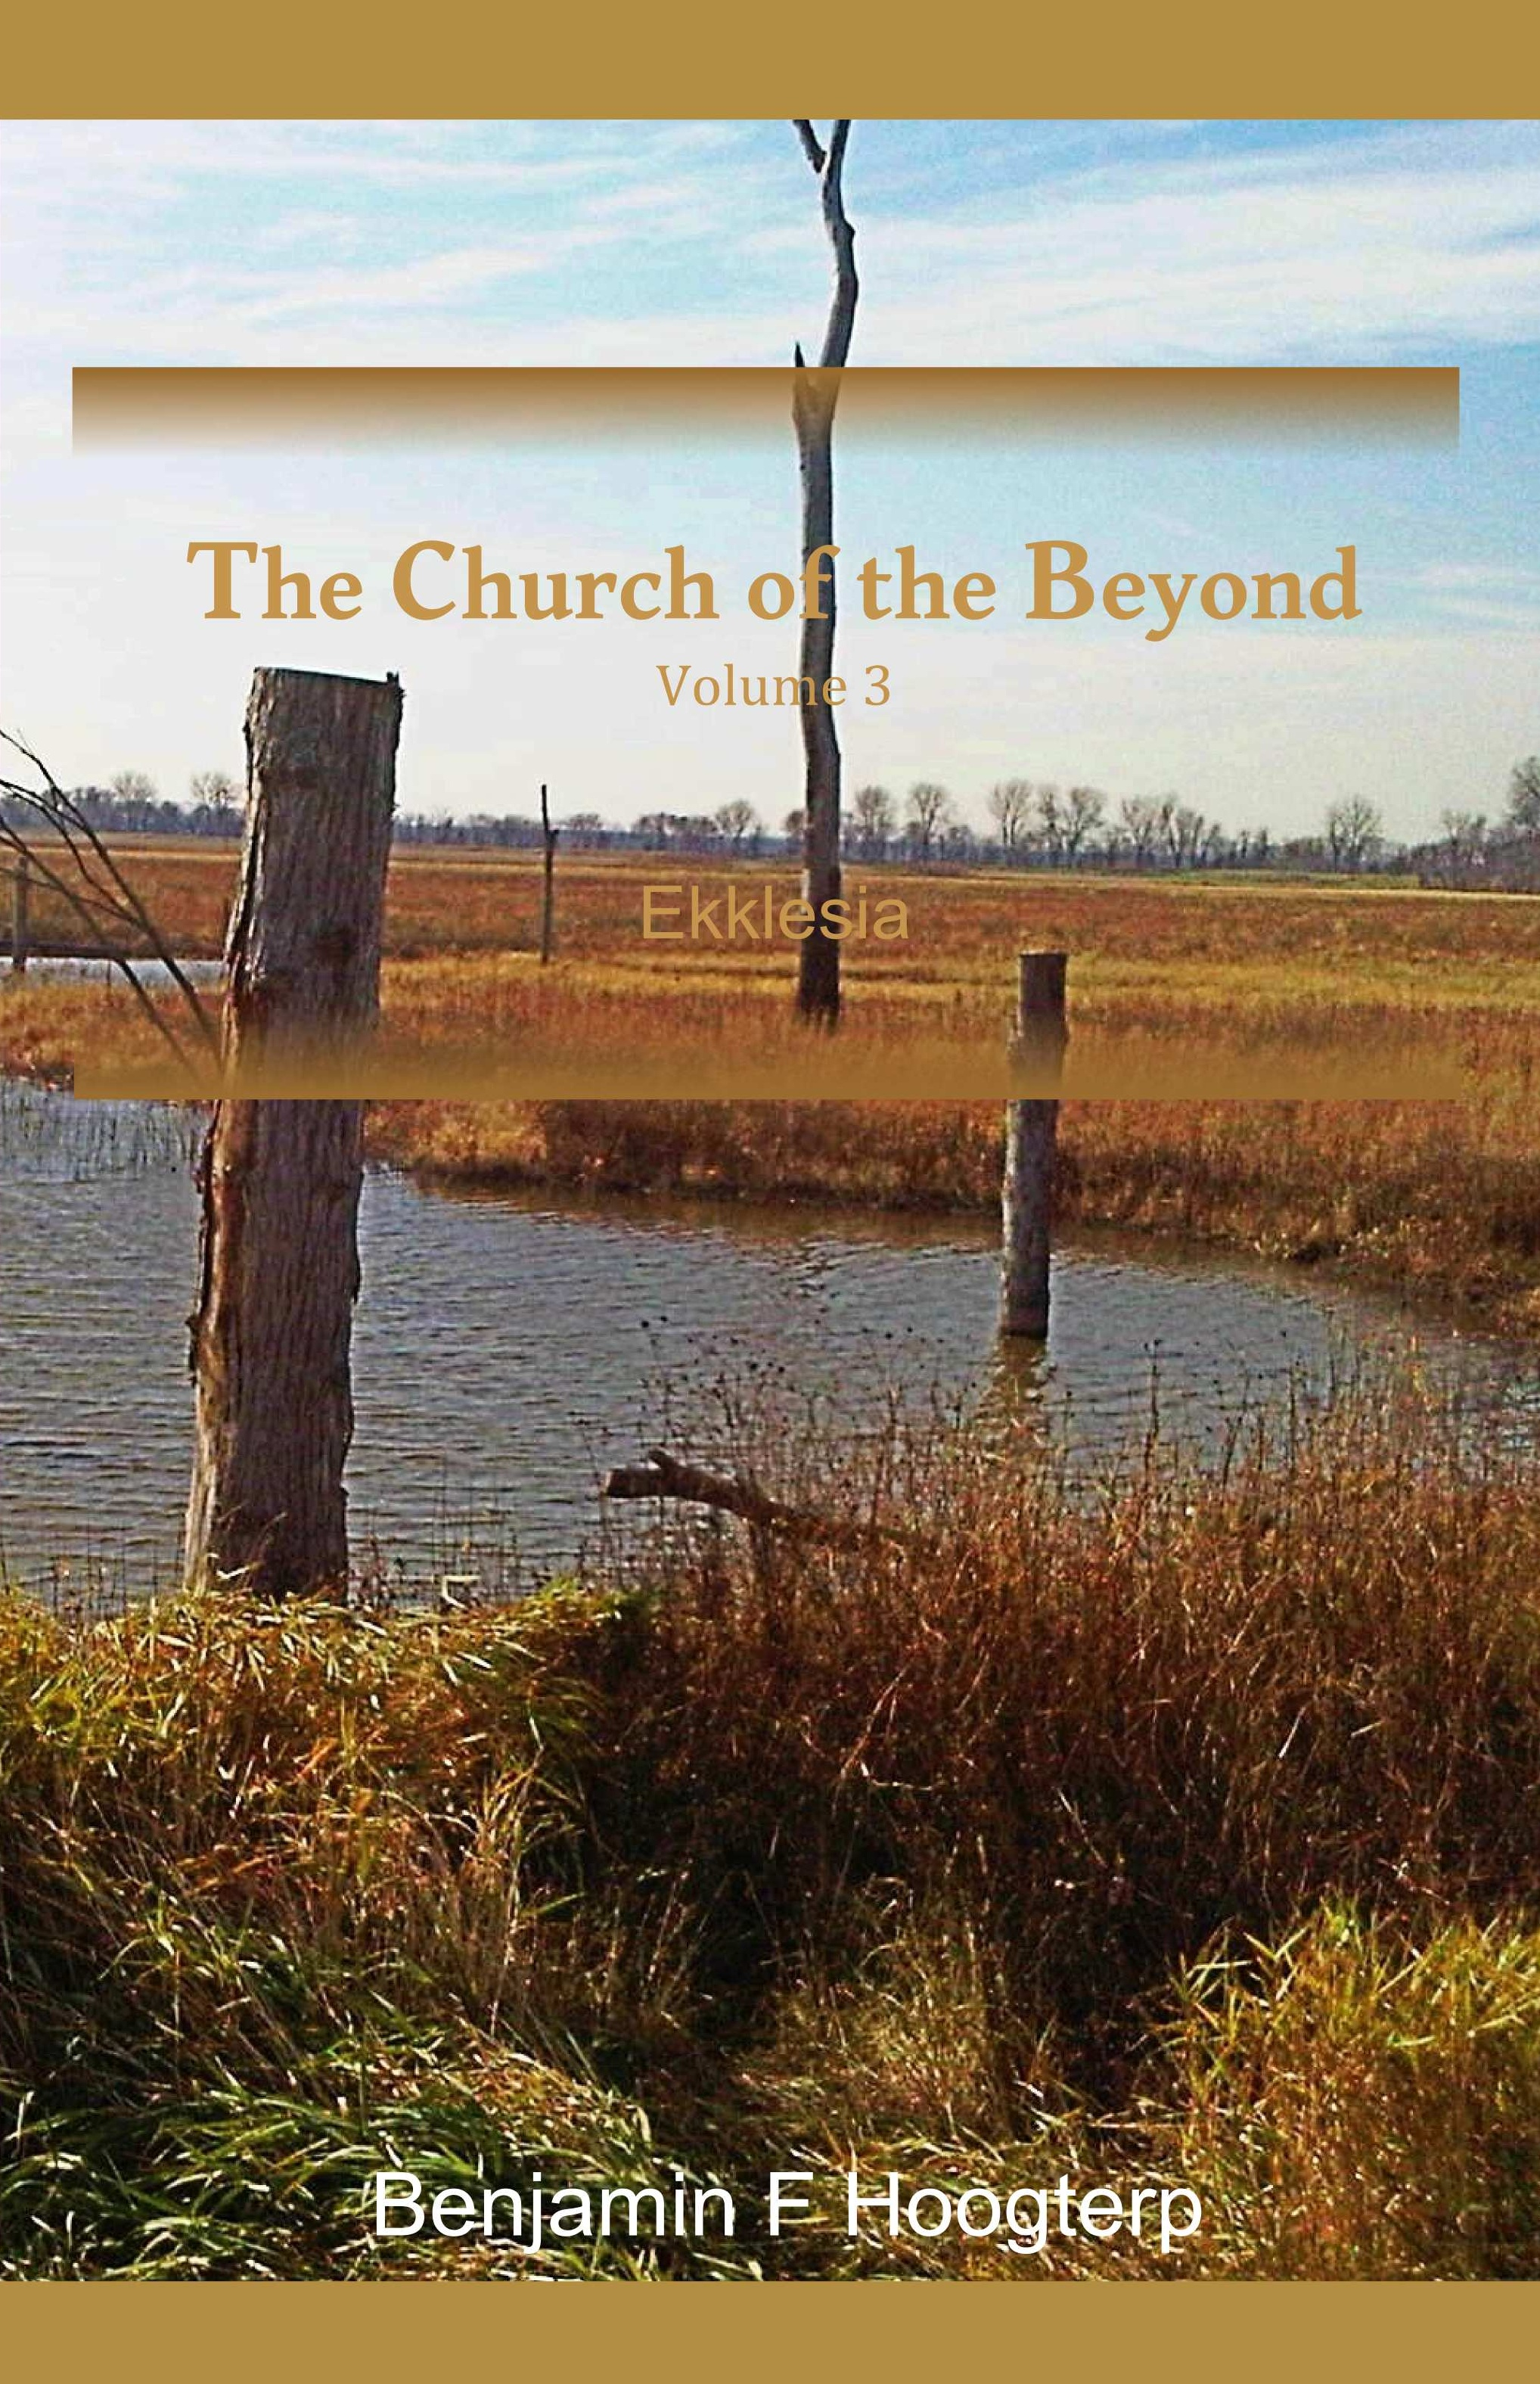 The Church of the Beyond, vol. 3: Ekklesia